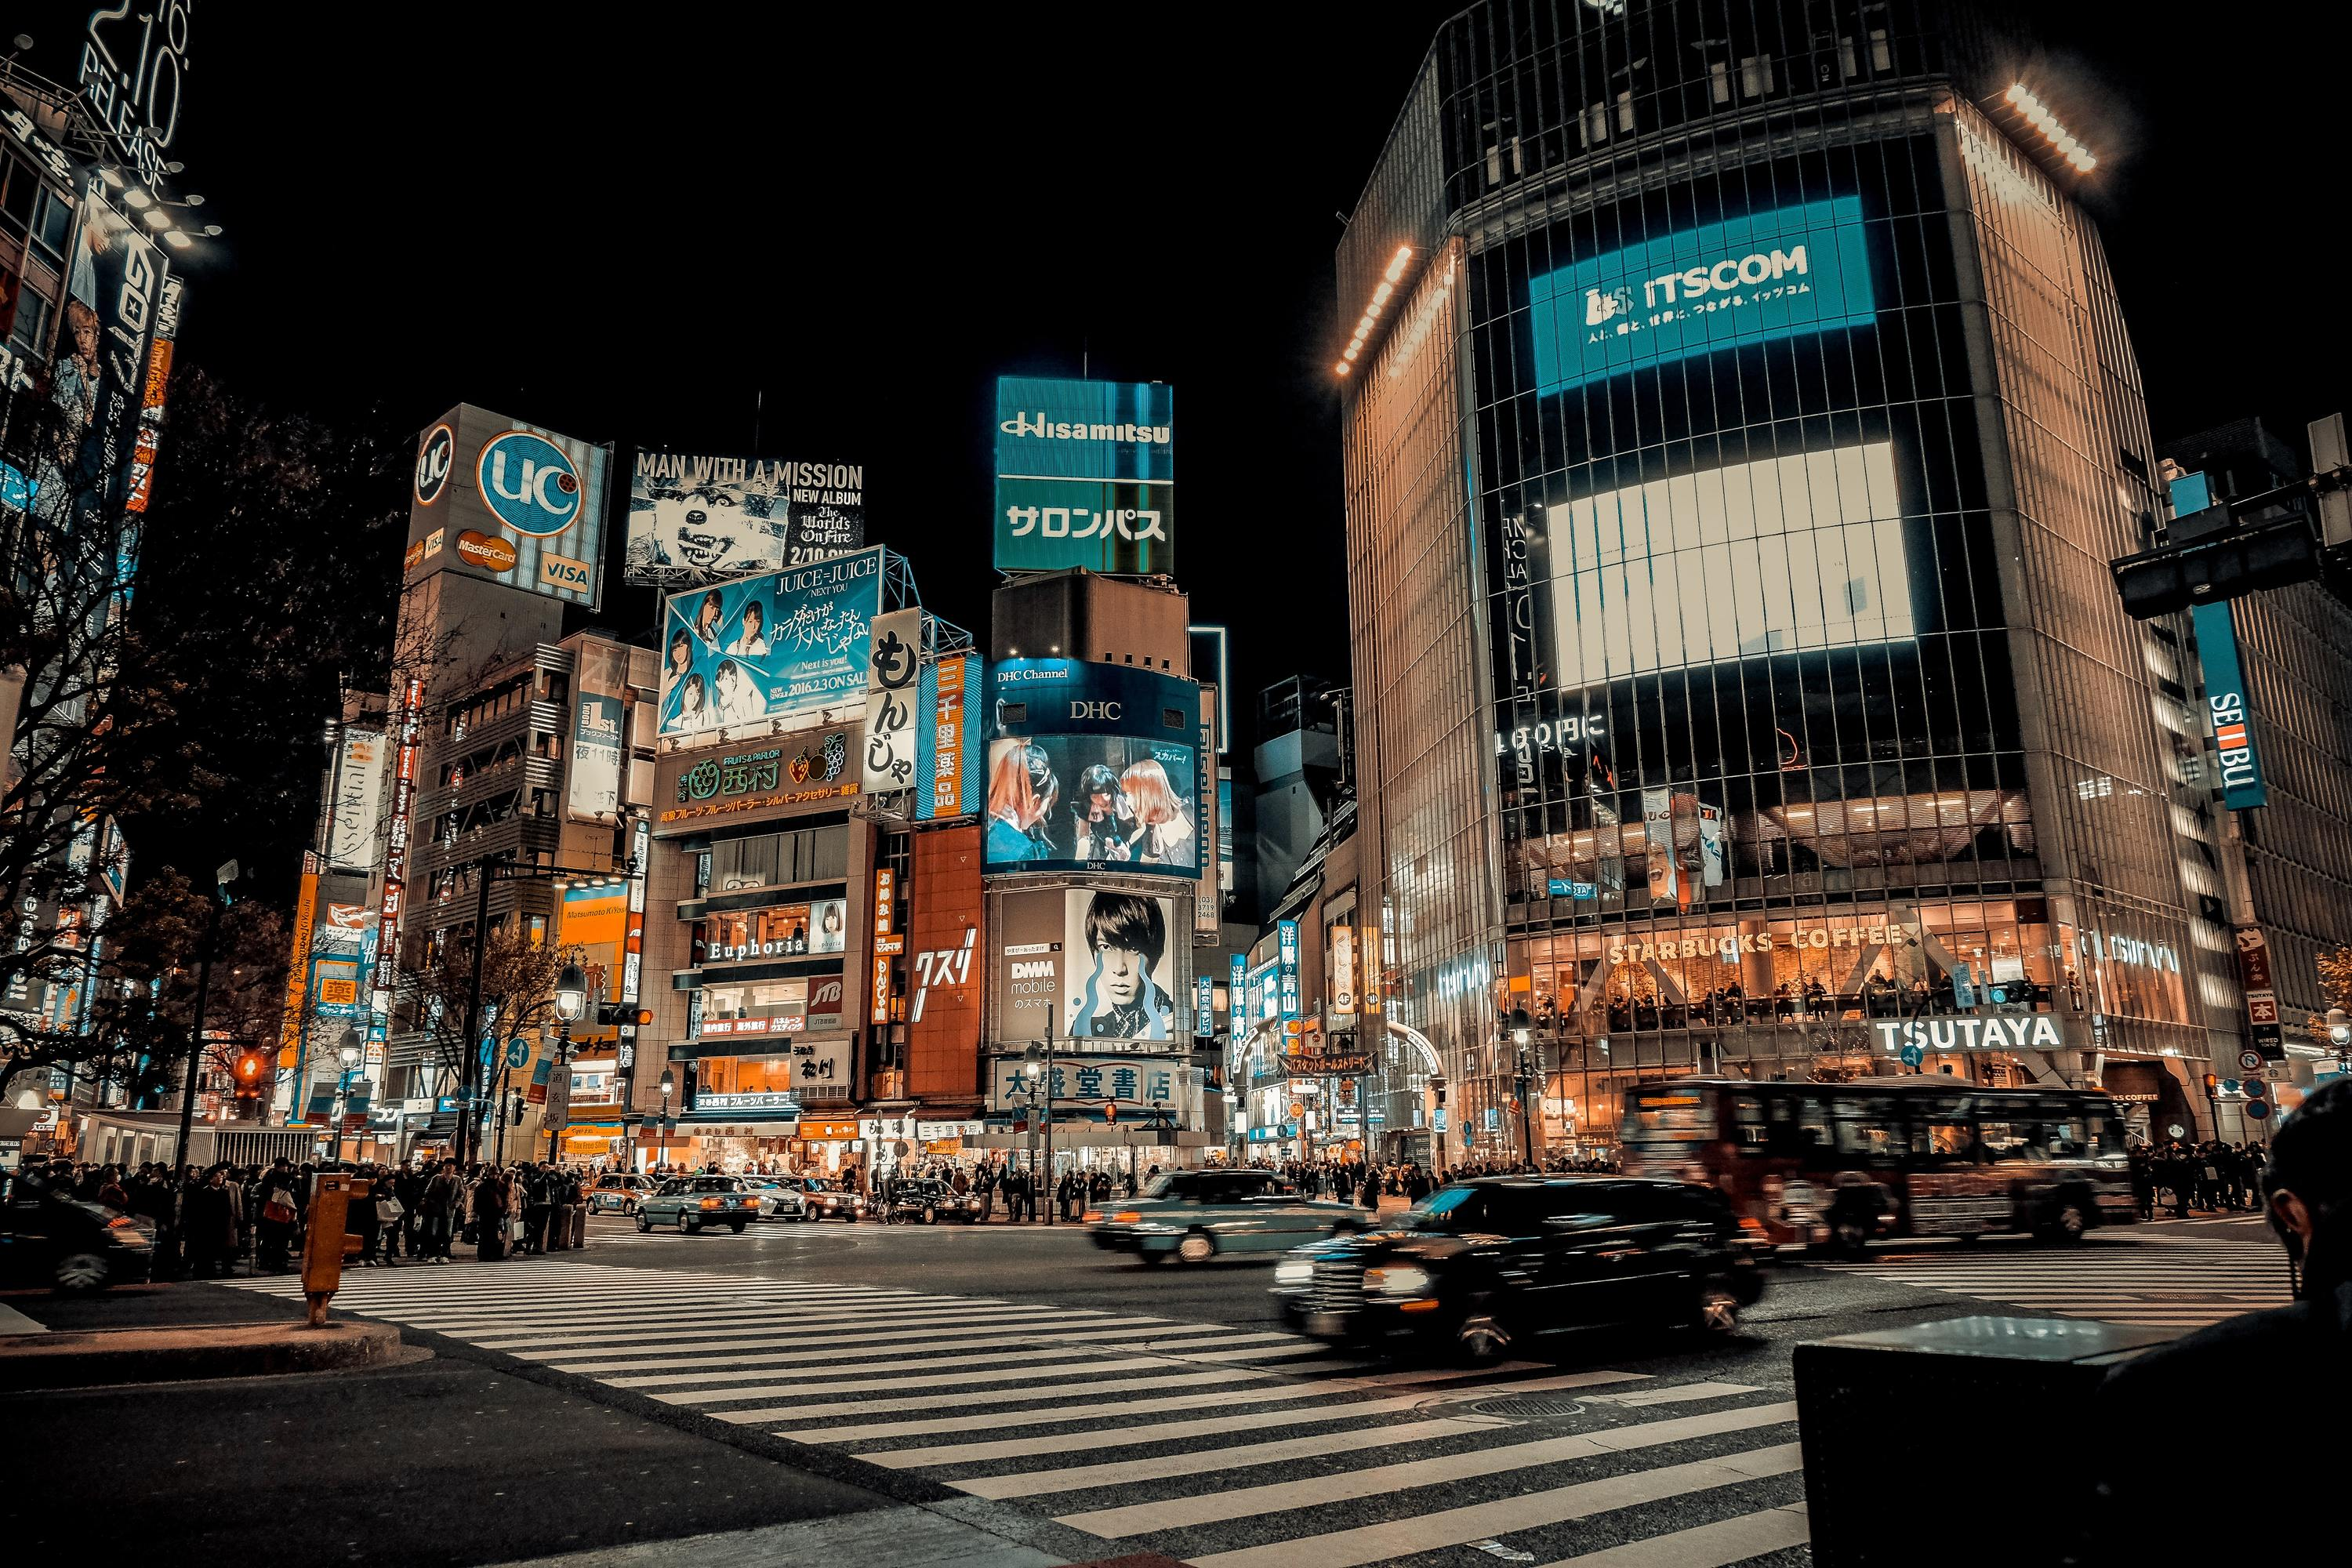 Explore Shibuya, Koenji, Tsukiji and more with these POV video walks around Tokyo